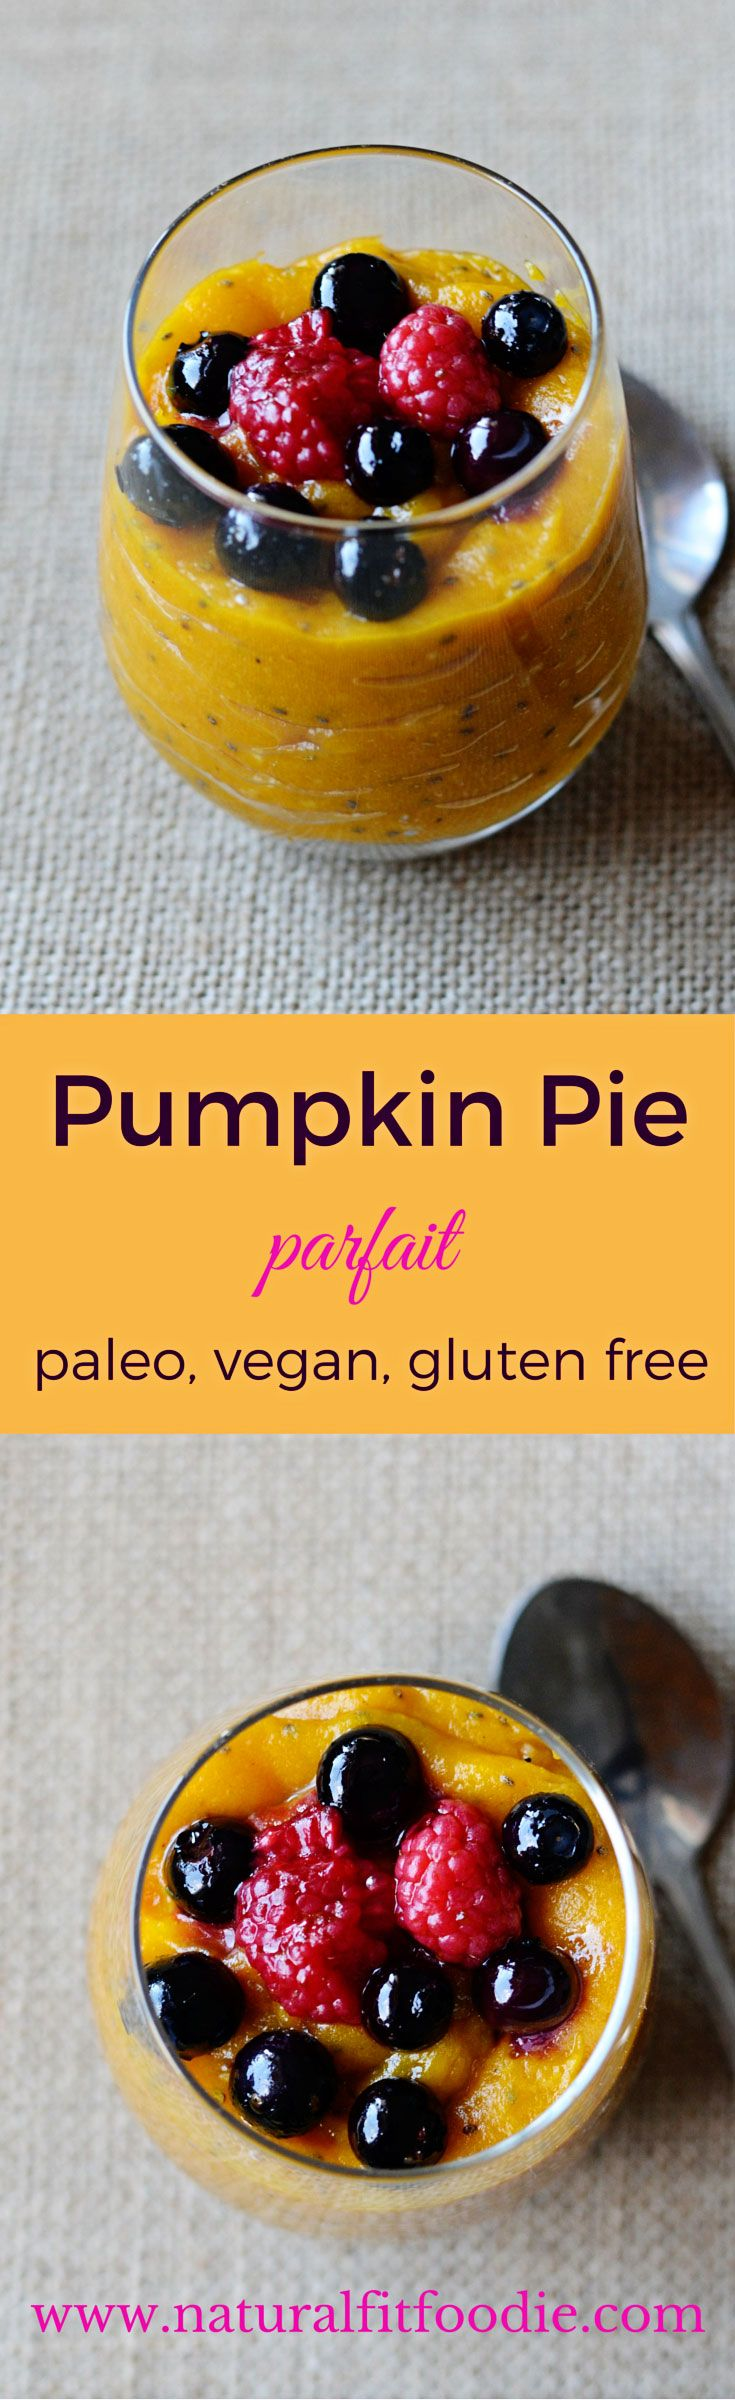 Pumpkin Pie Parfait - www.naturalfitfoodie.com This Pumpkin Pie Parfait is the most allergy friendly Thanksgiving dessert you will ever some across! It's vegan, paleo, gluten free, refined sugar-free, whole-30 approved and not to mention delicious!!